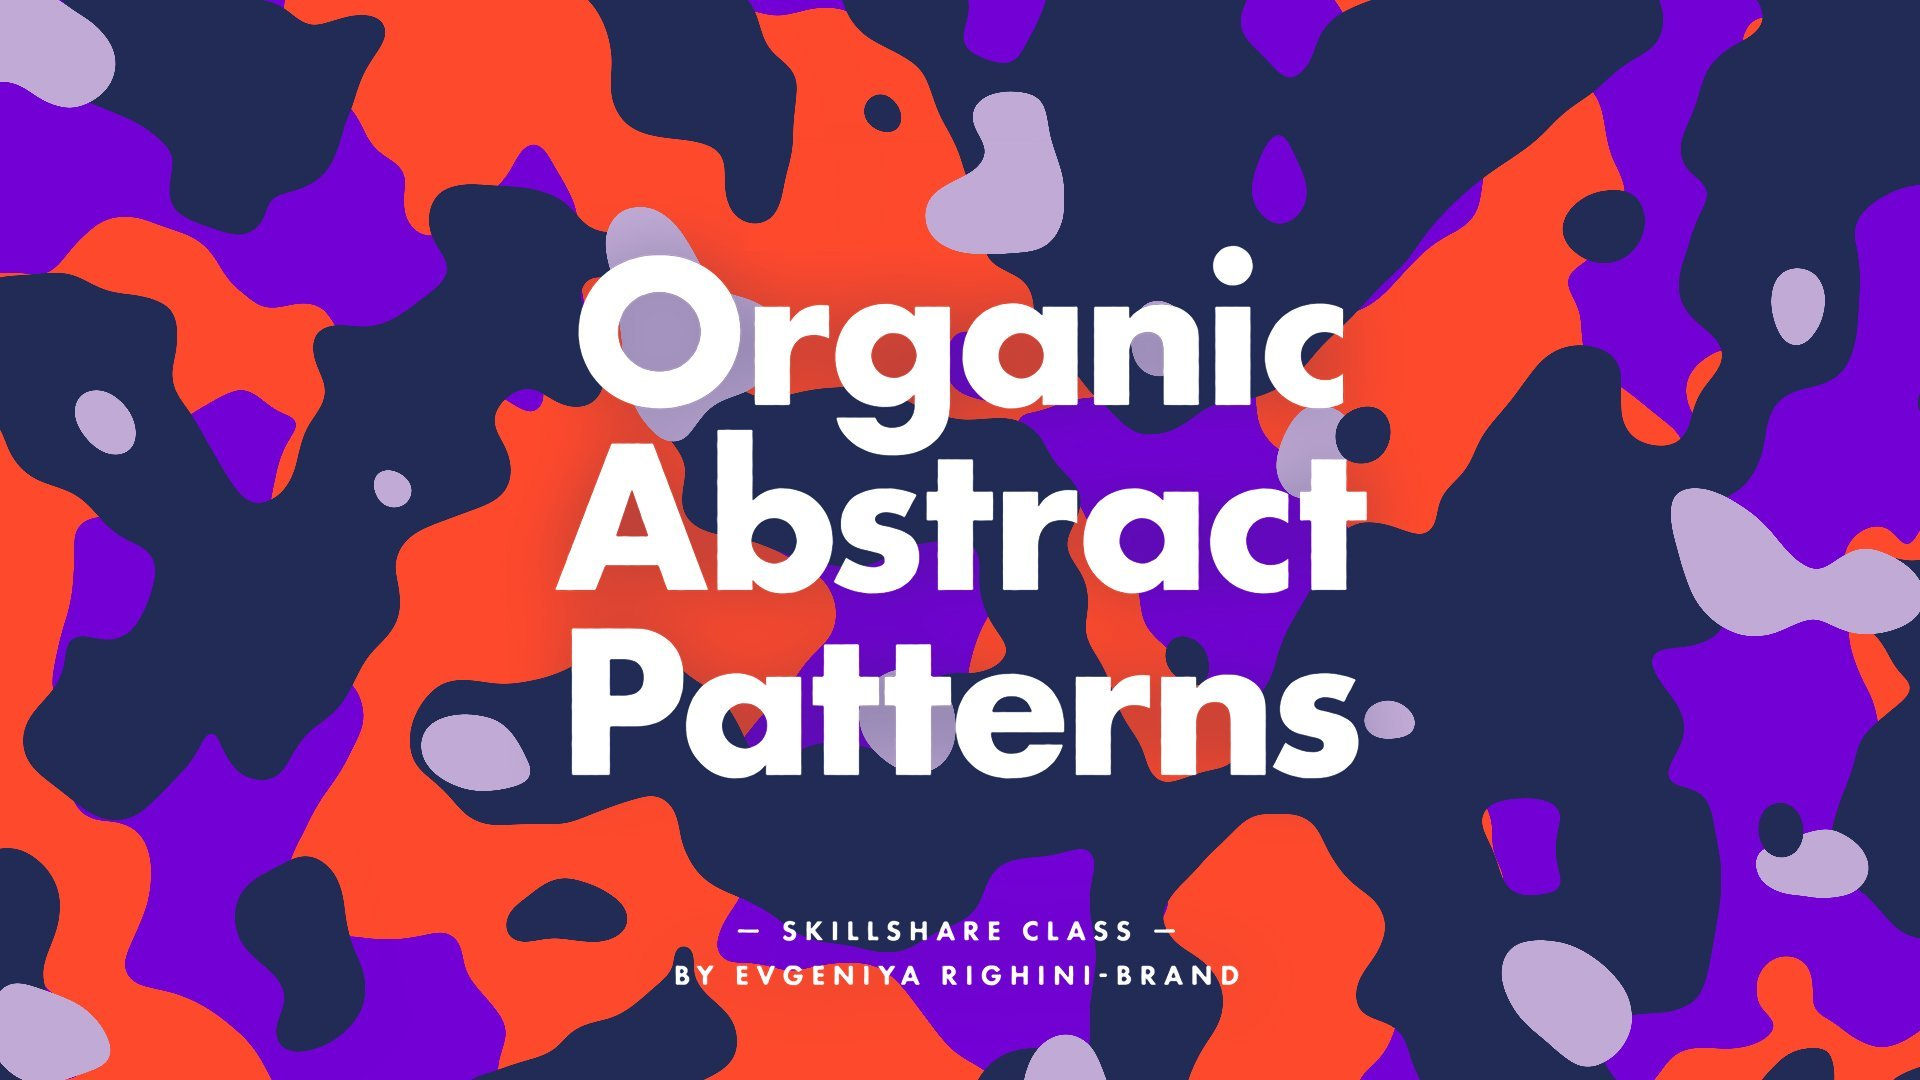 Organic Abstract Patterns